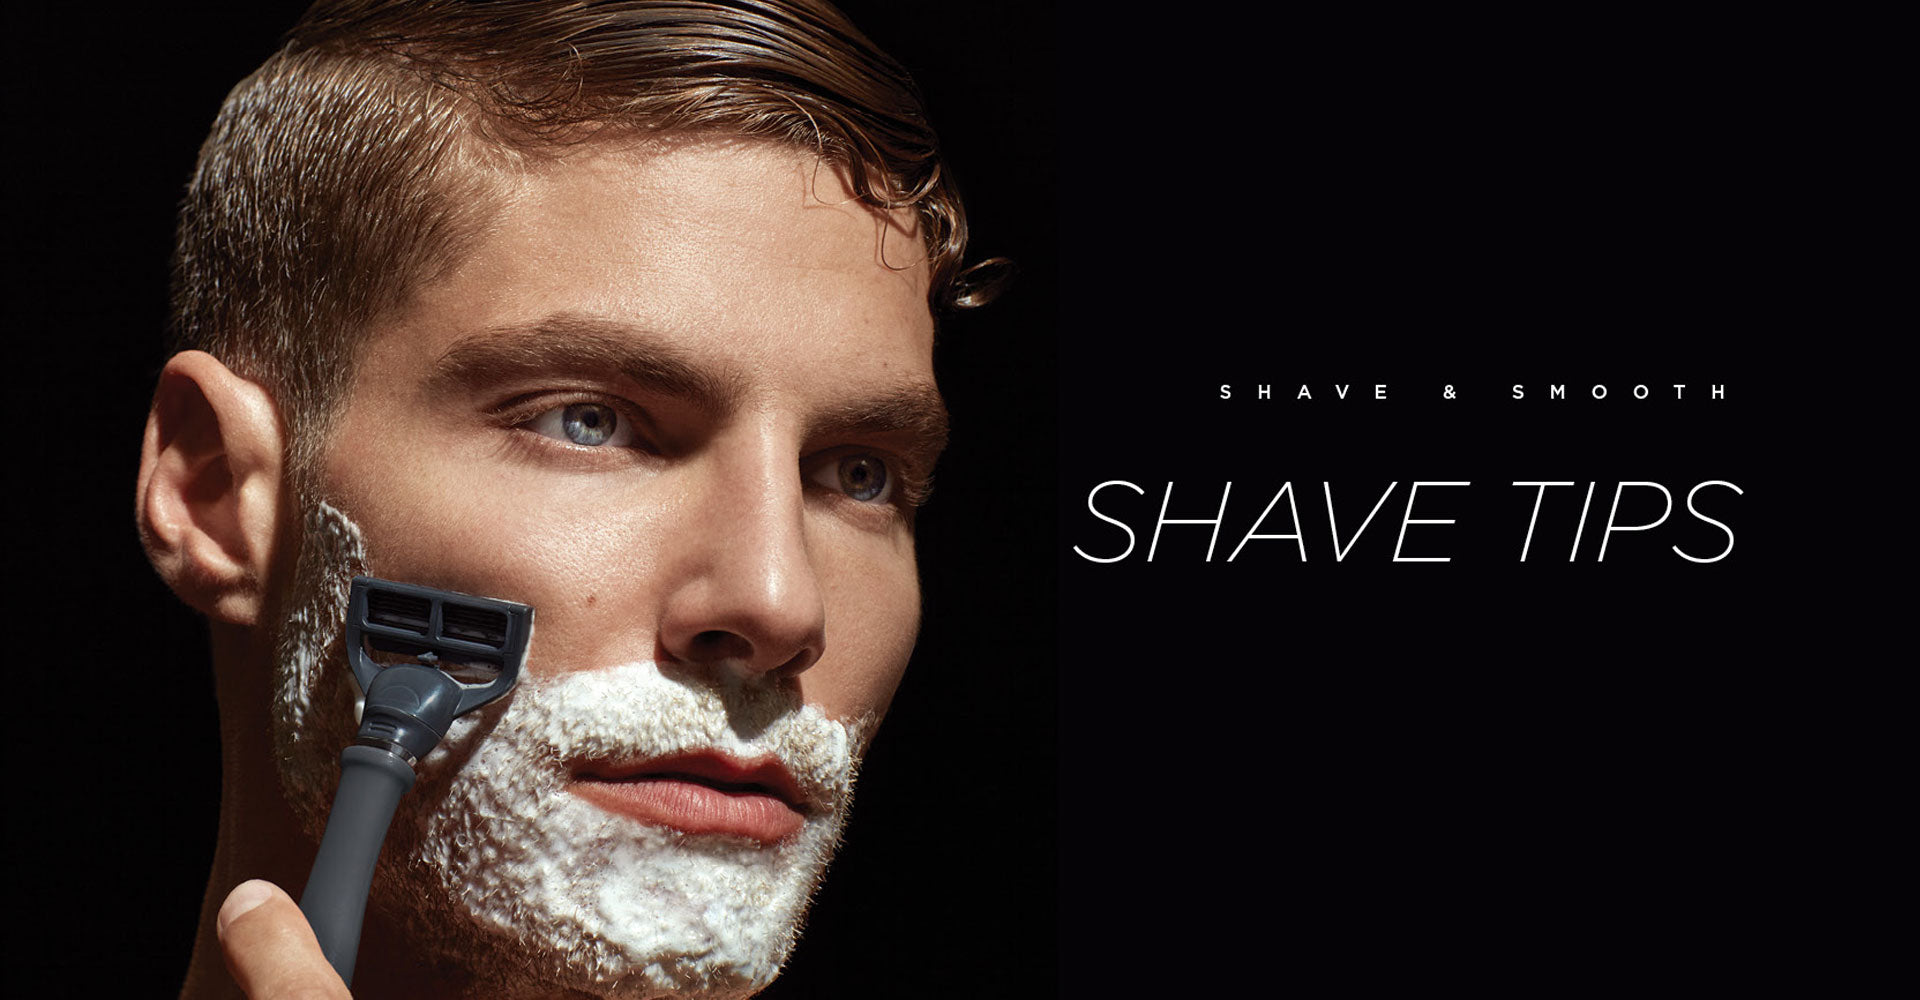 Shave Tips